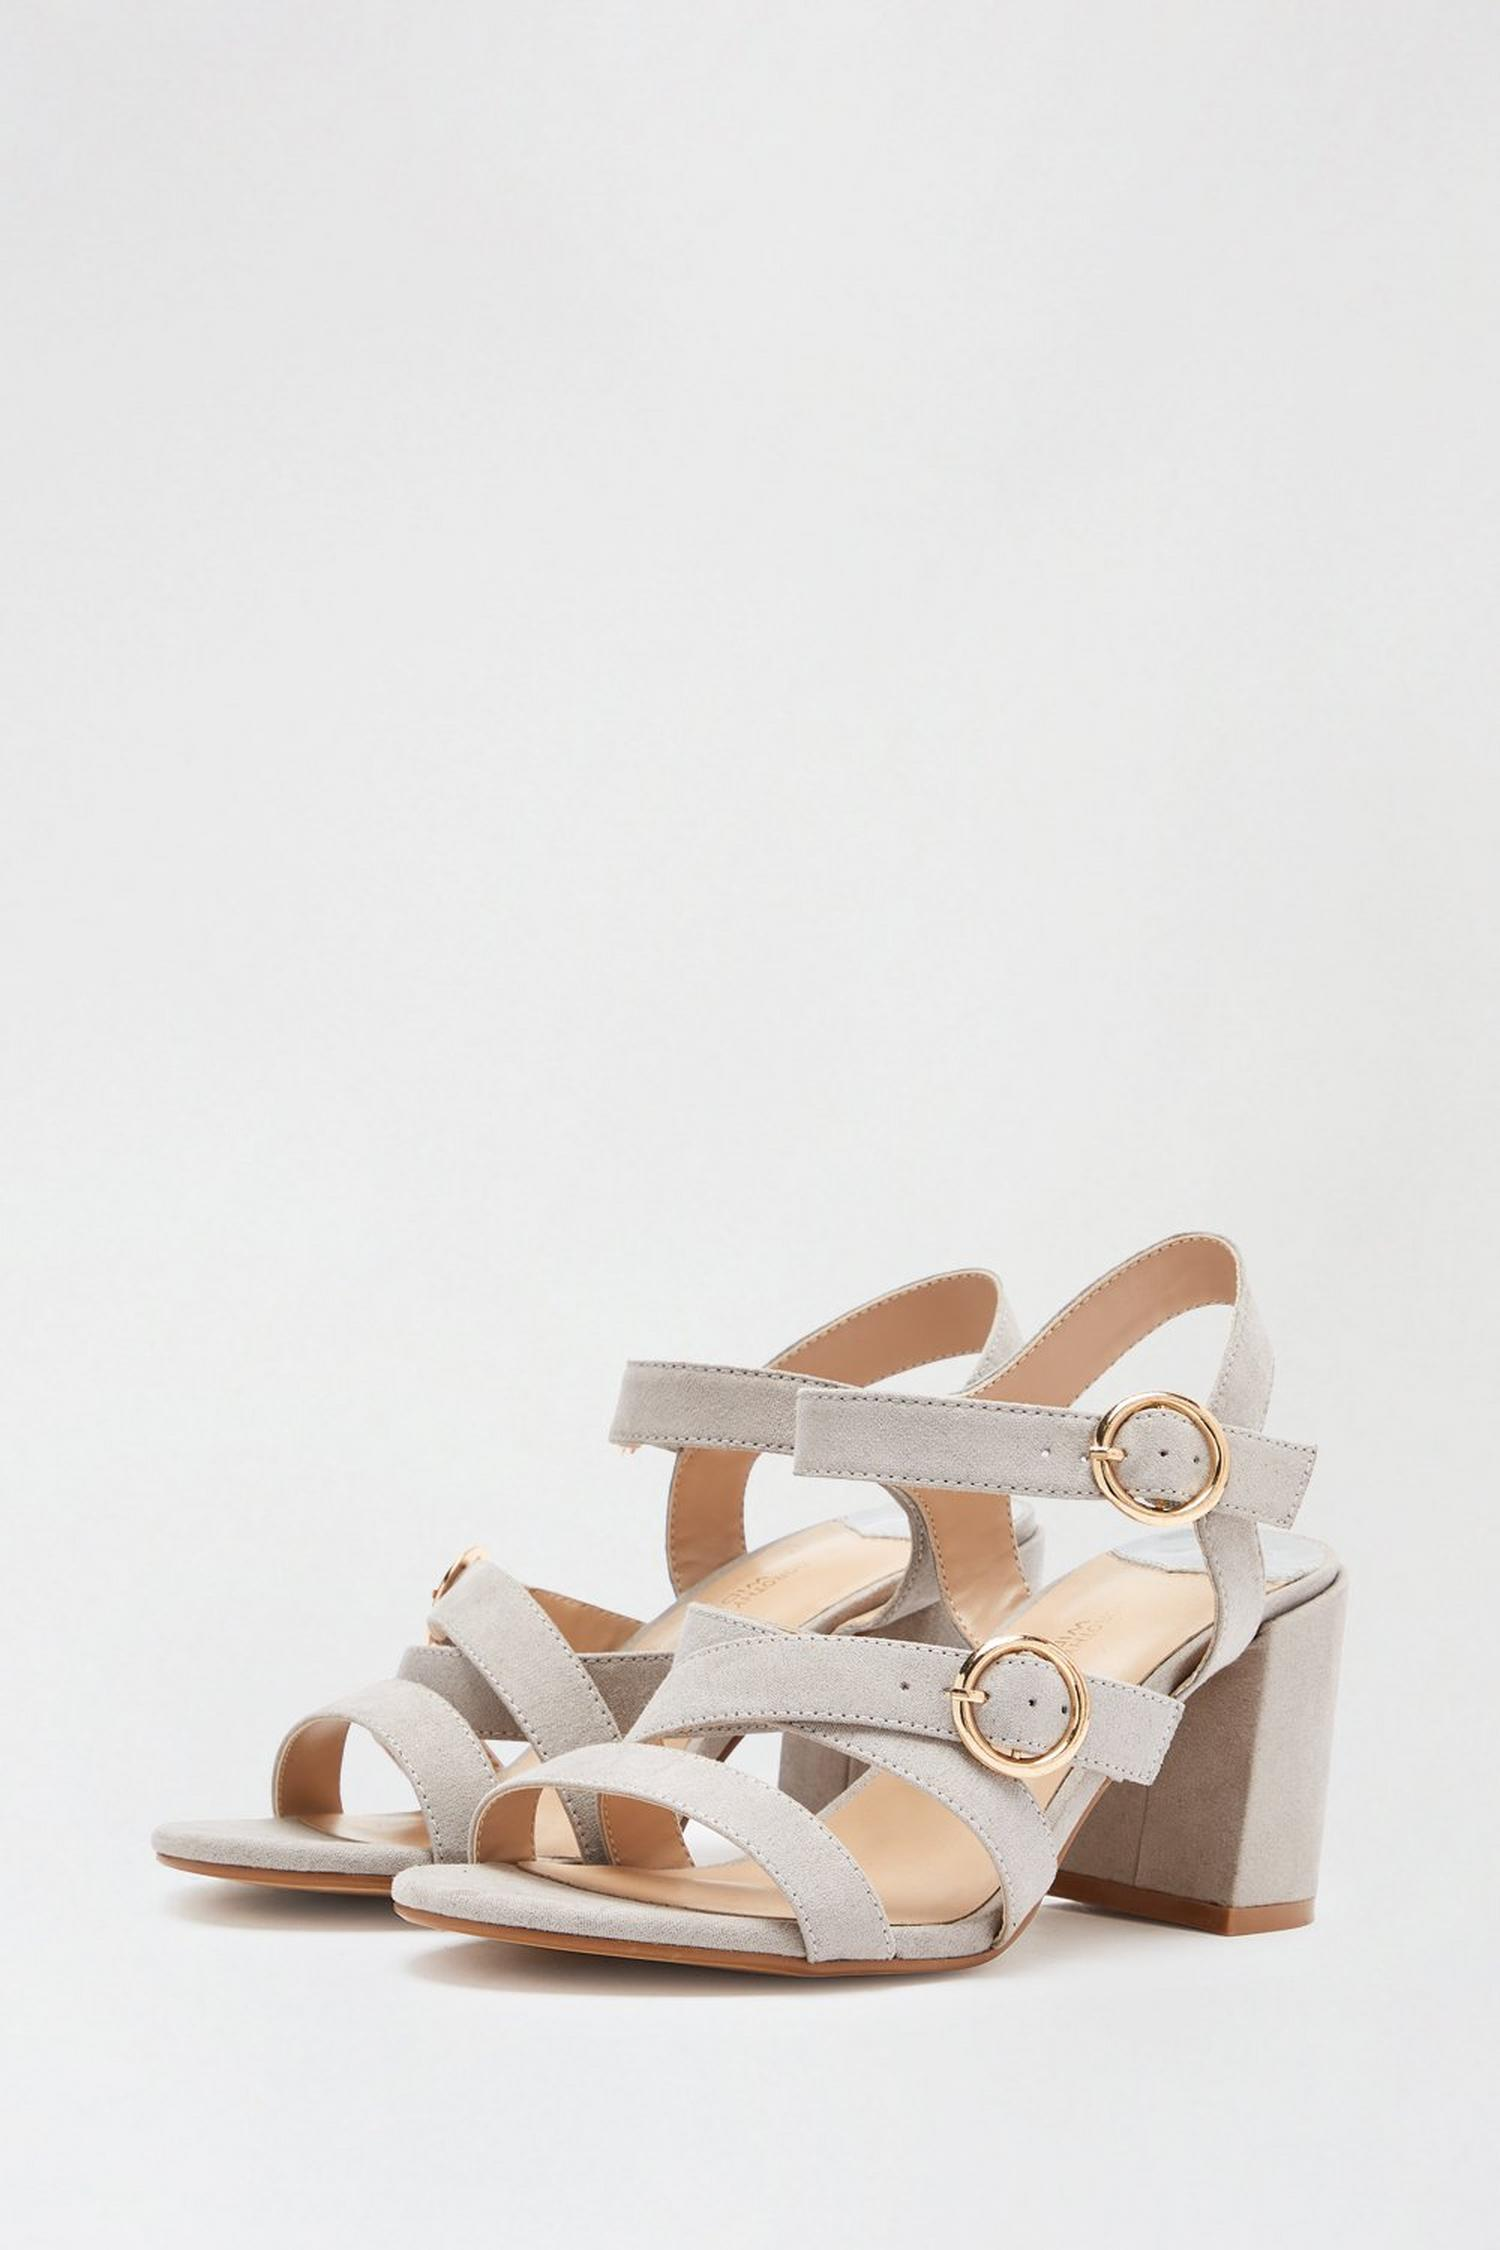 131 Wide Fit Grey Saffi Strappy Heeled Sandal image number 2